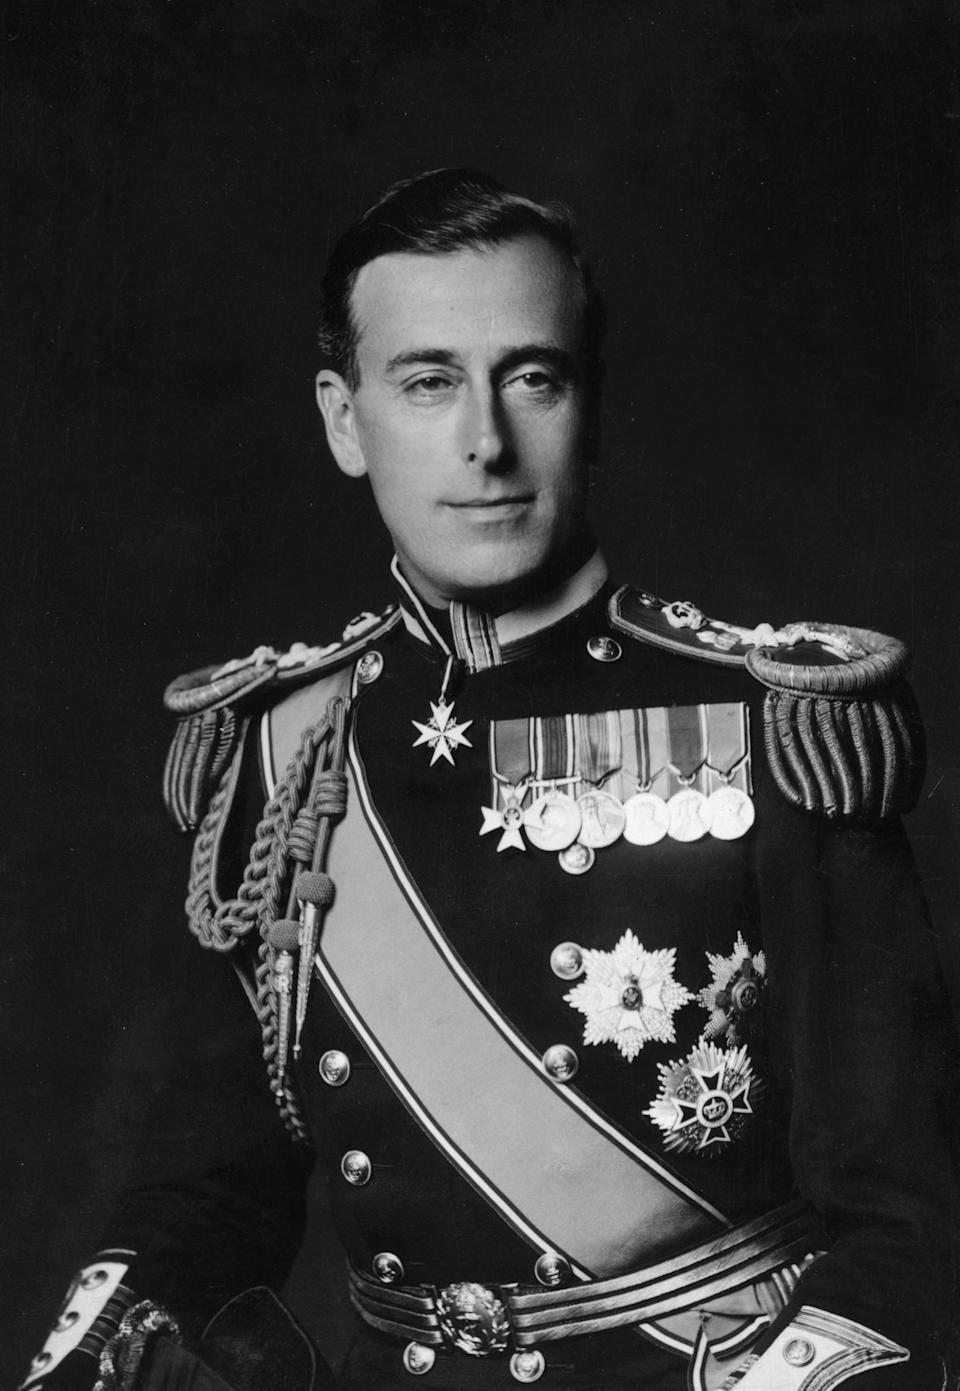 14th April 1942:  British naval officer Captain Lord Louis Mountbatten (1900 - 1979), the new chief of Combined Operations during World War II, with the acting rank of vice-admiral.  (Photo by Walter Stoneman/Hulton Archive/Getty Images)